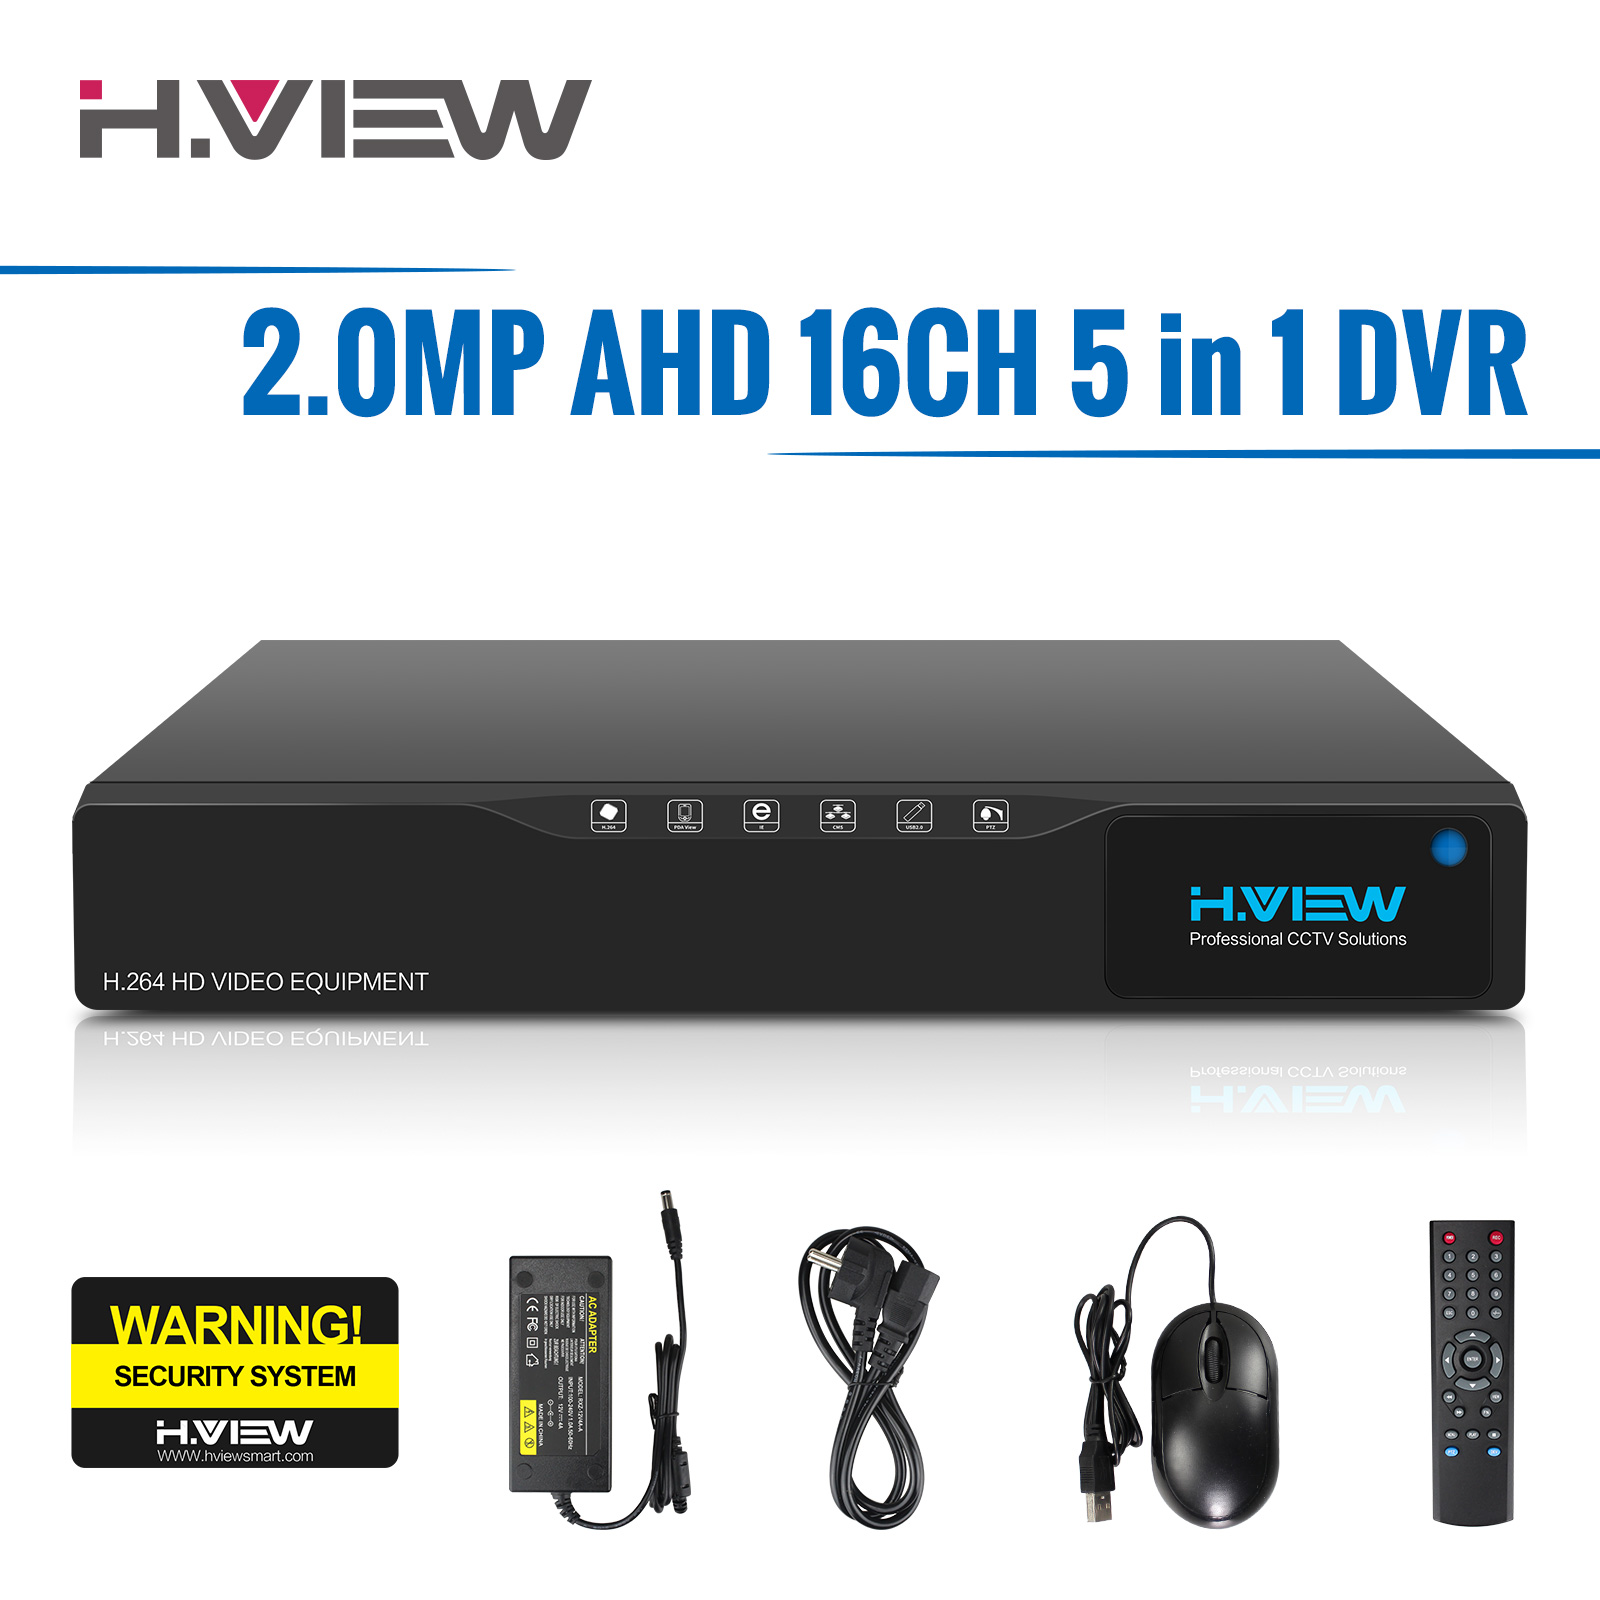 h.264 network dvr 16 channel manual